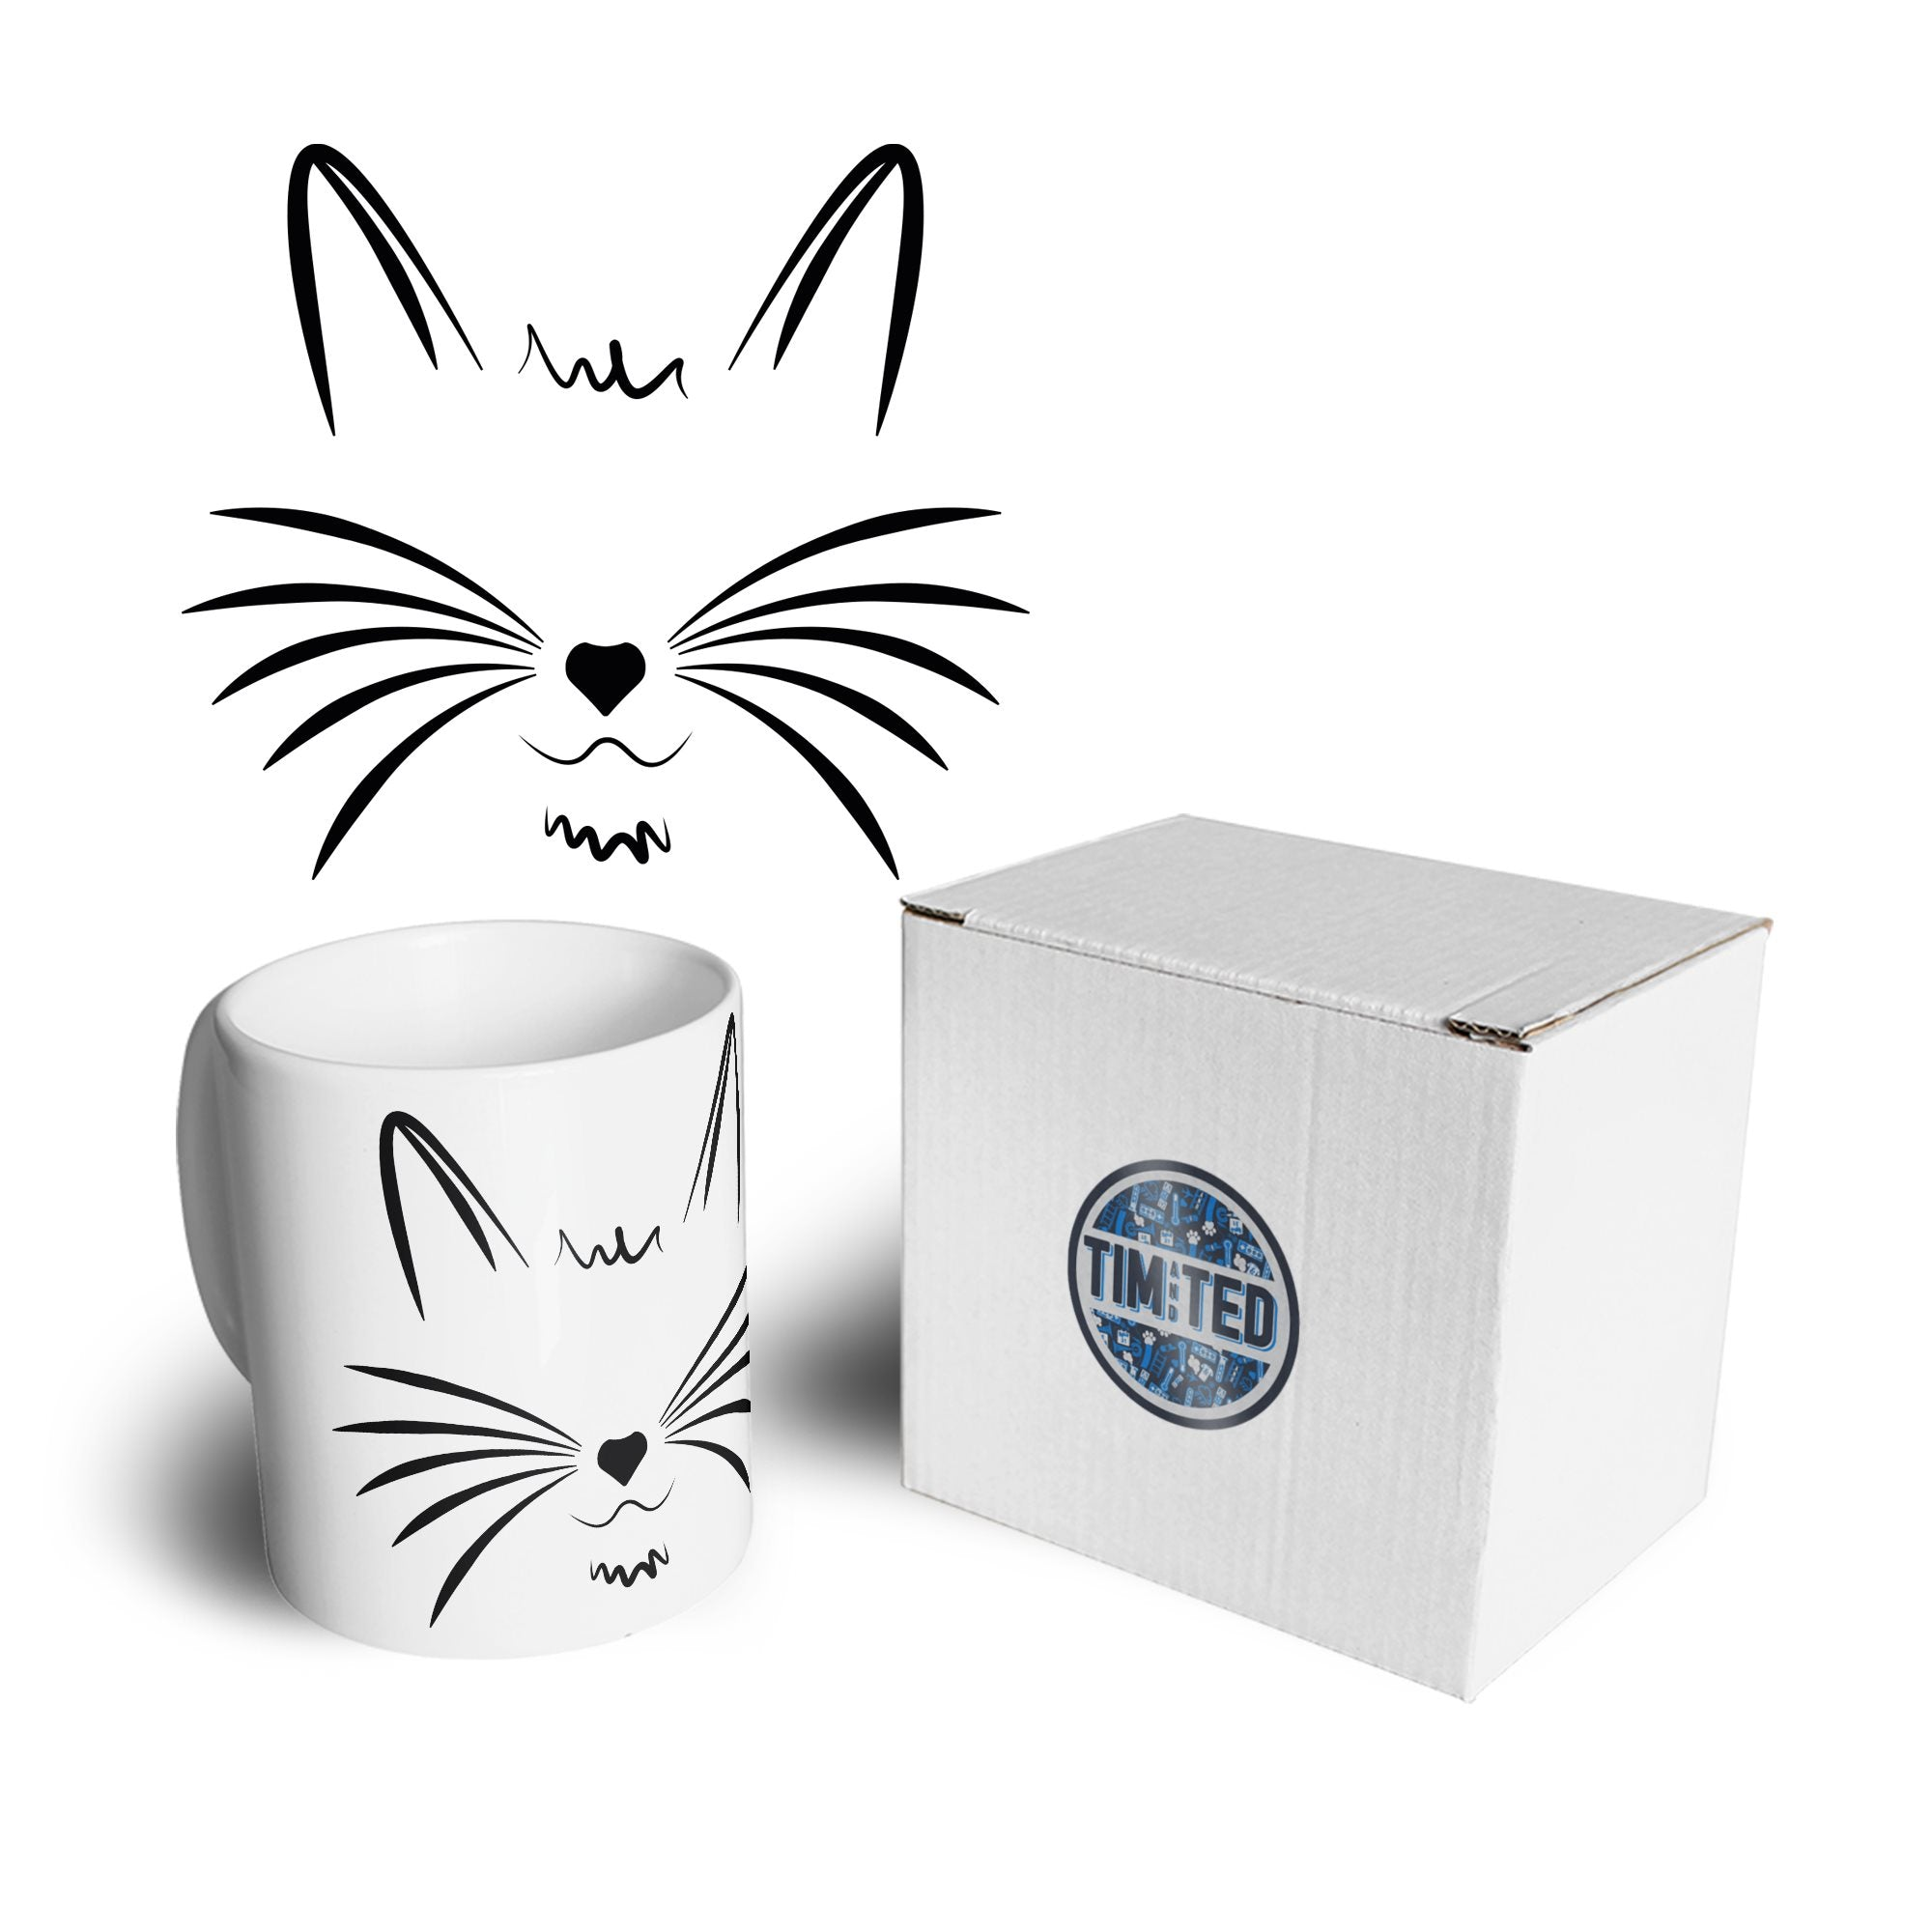 I Love Cats Mug Face with Heart Nose Coffee Tea Cup